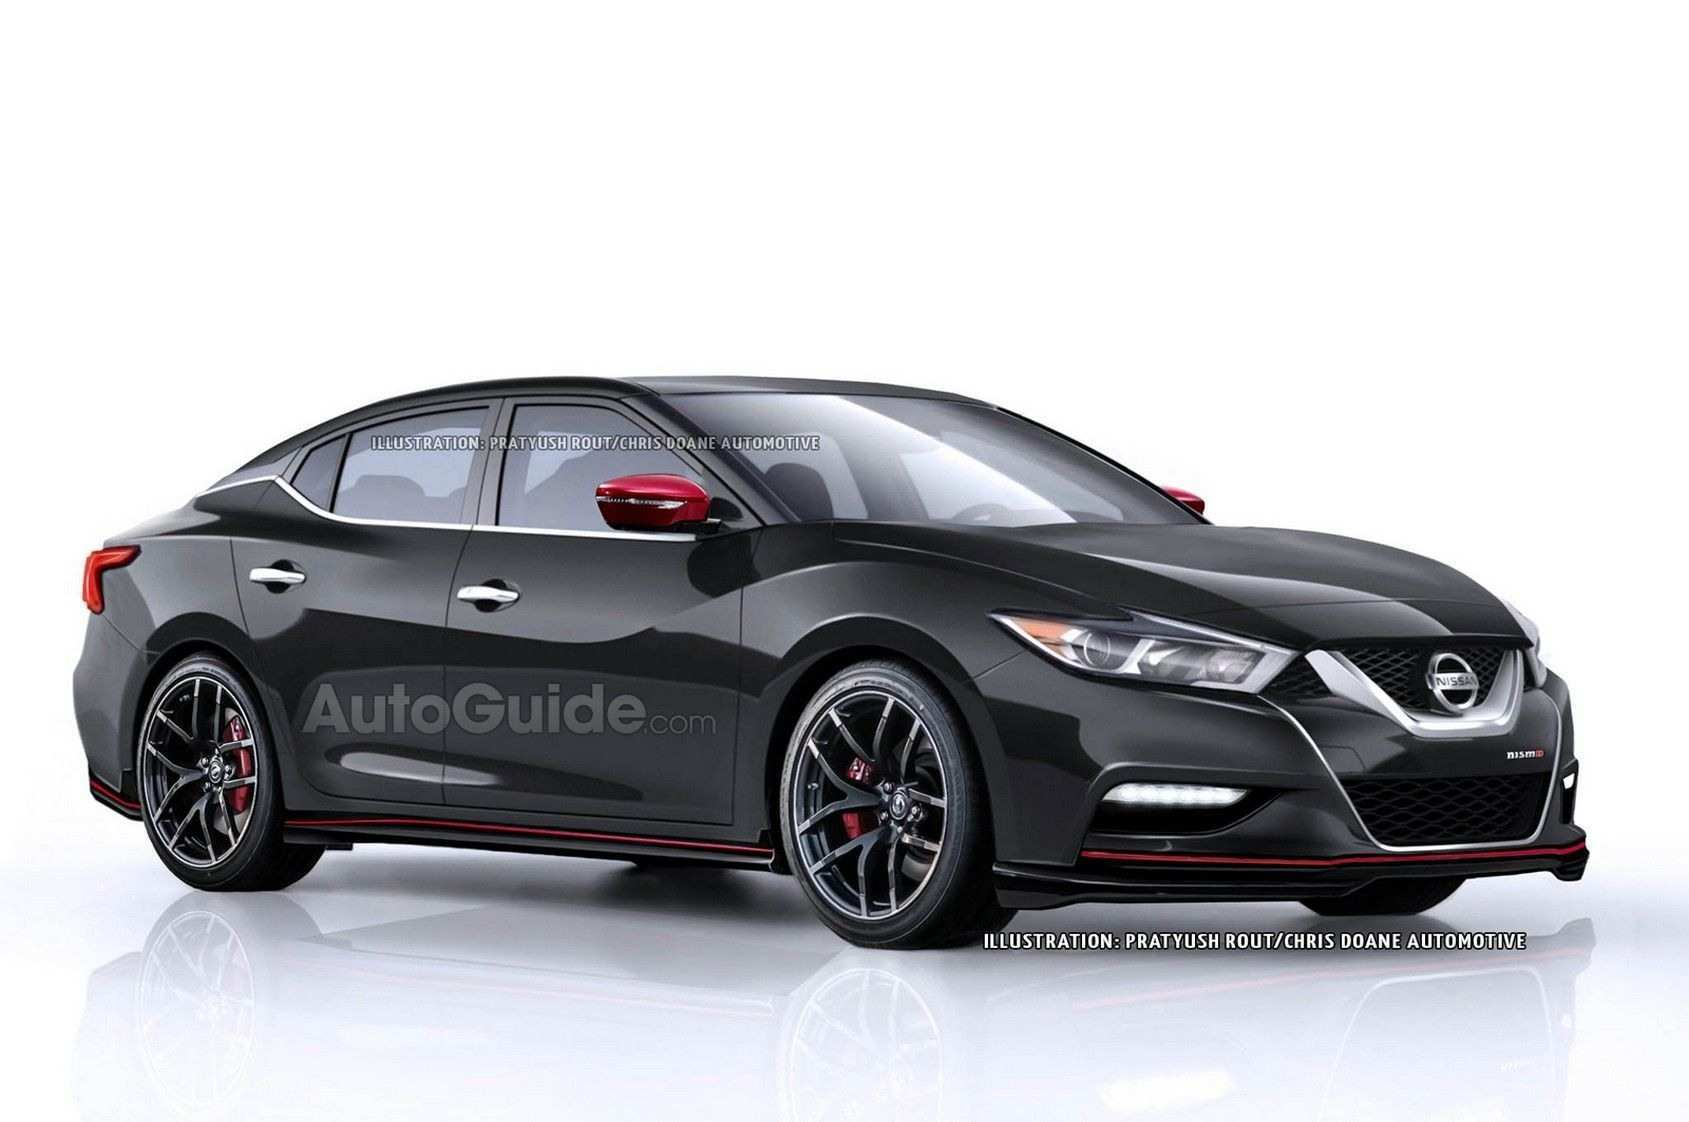 87 The Best Nissan Maxima 2020 Awd Pricing